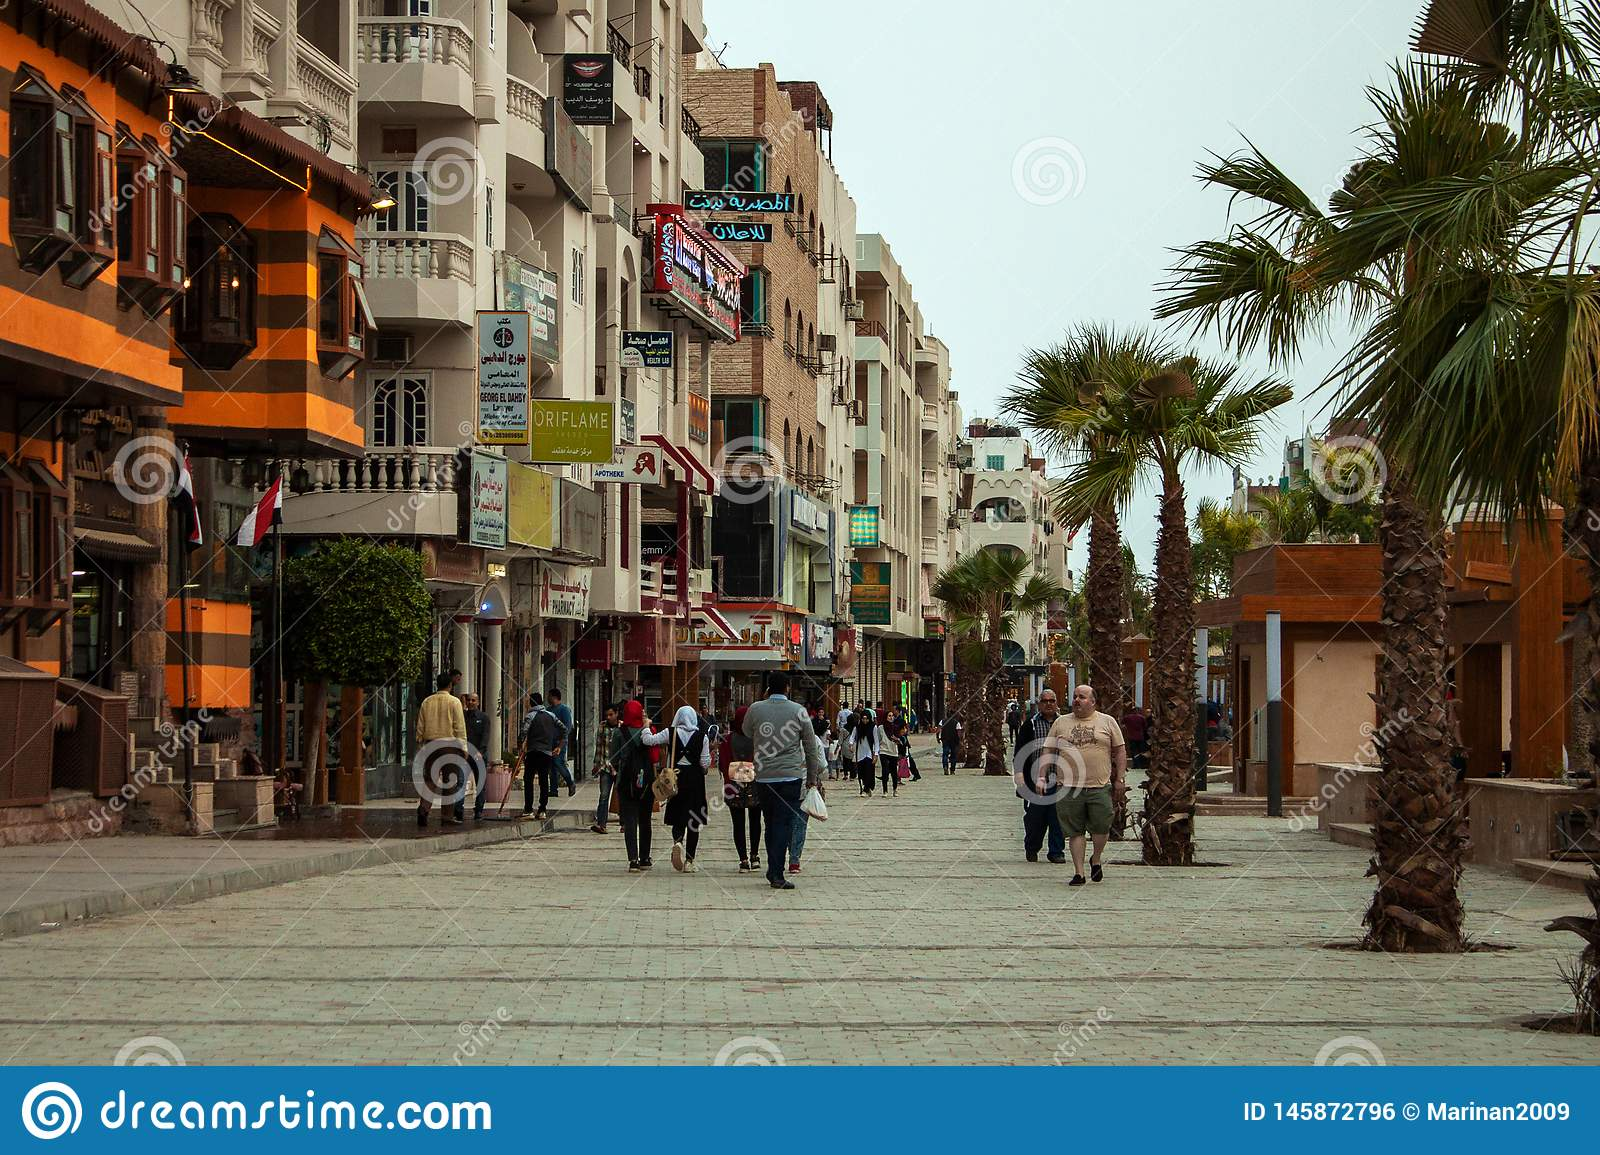 April 2018, Egypt, Hurghada. Sherry Street in Hurghada. April 2018 Egypt Hurghada. New Sherry Street in Hurghada royalty free stock image